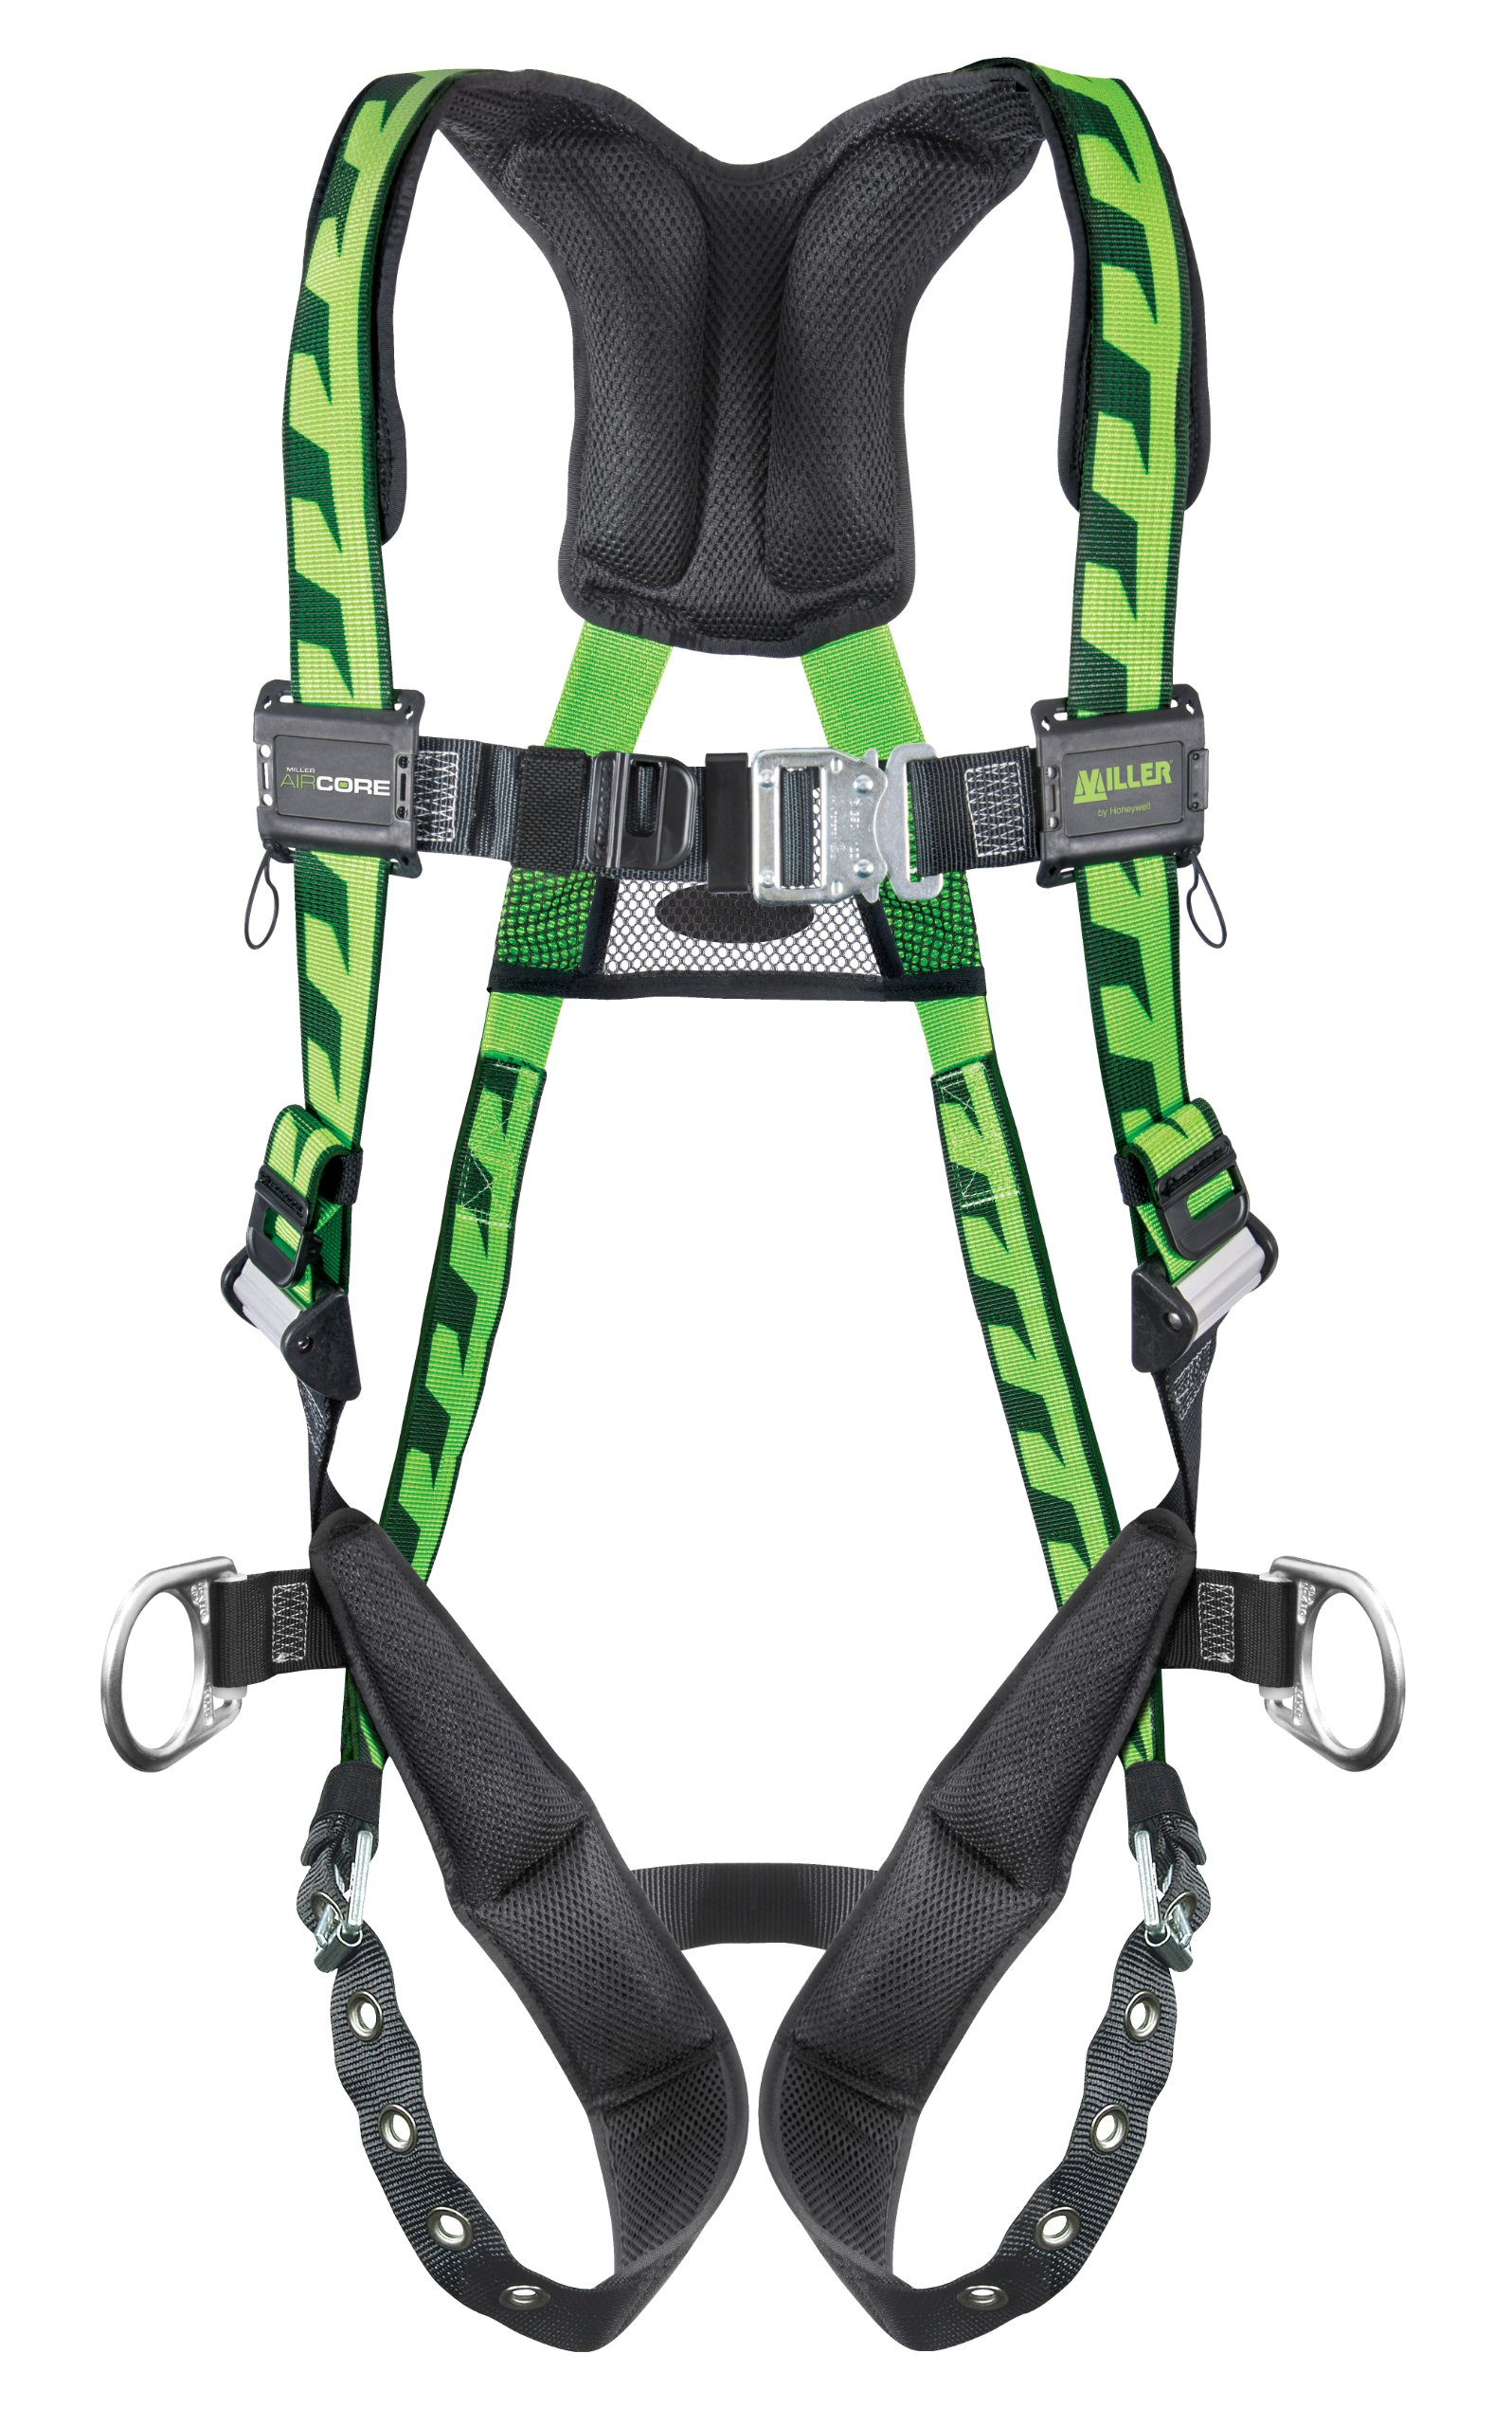 Miller Titan by Honeywell AC-QC-BDP/UGN AirCore Full Body Harness, Large/X-Large, Green